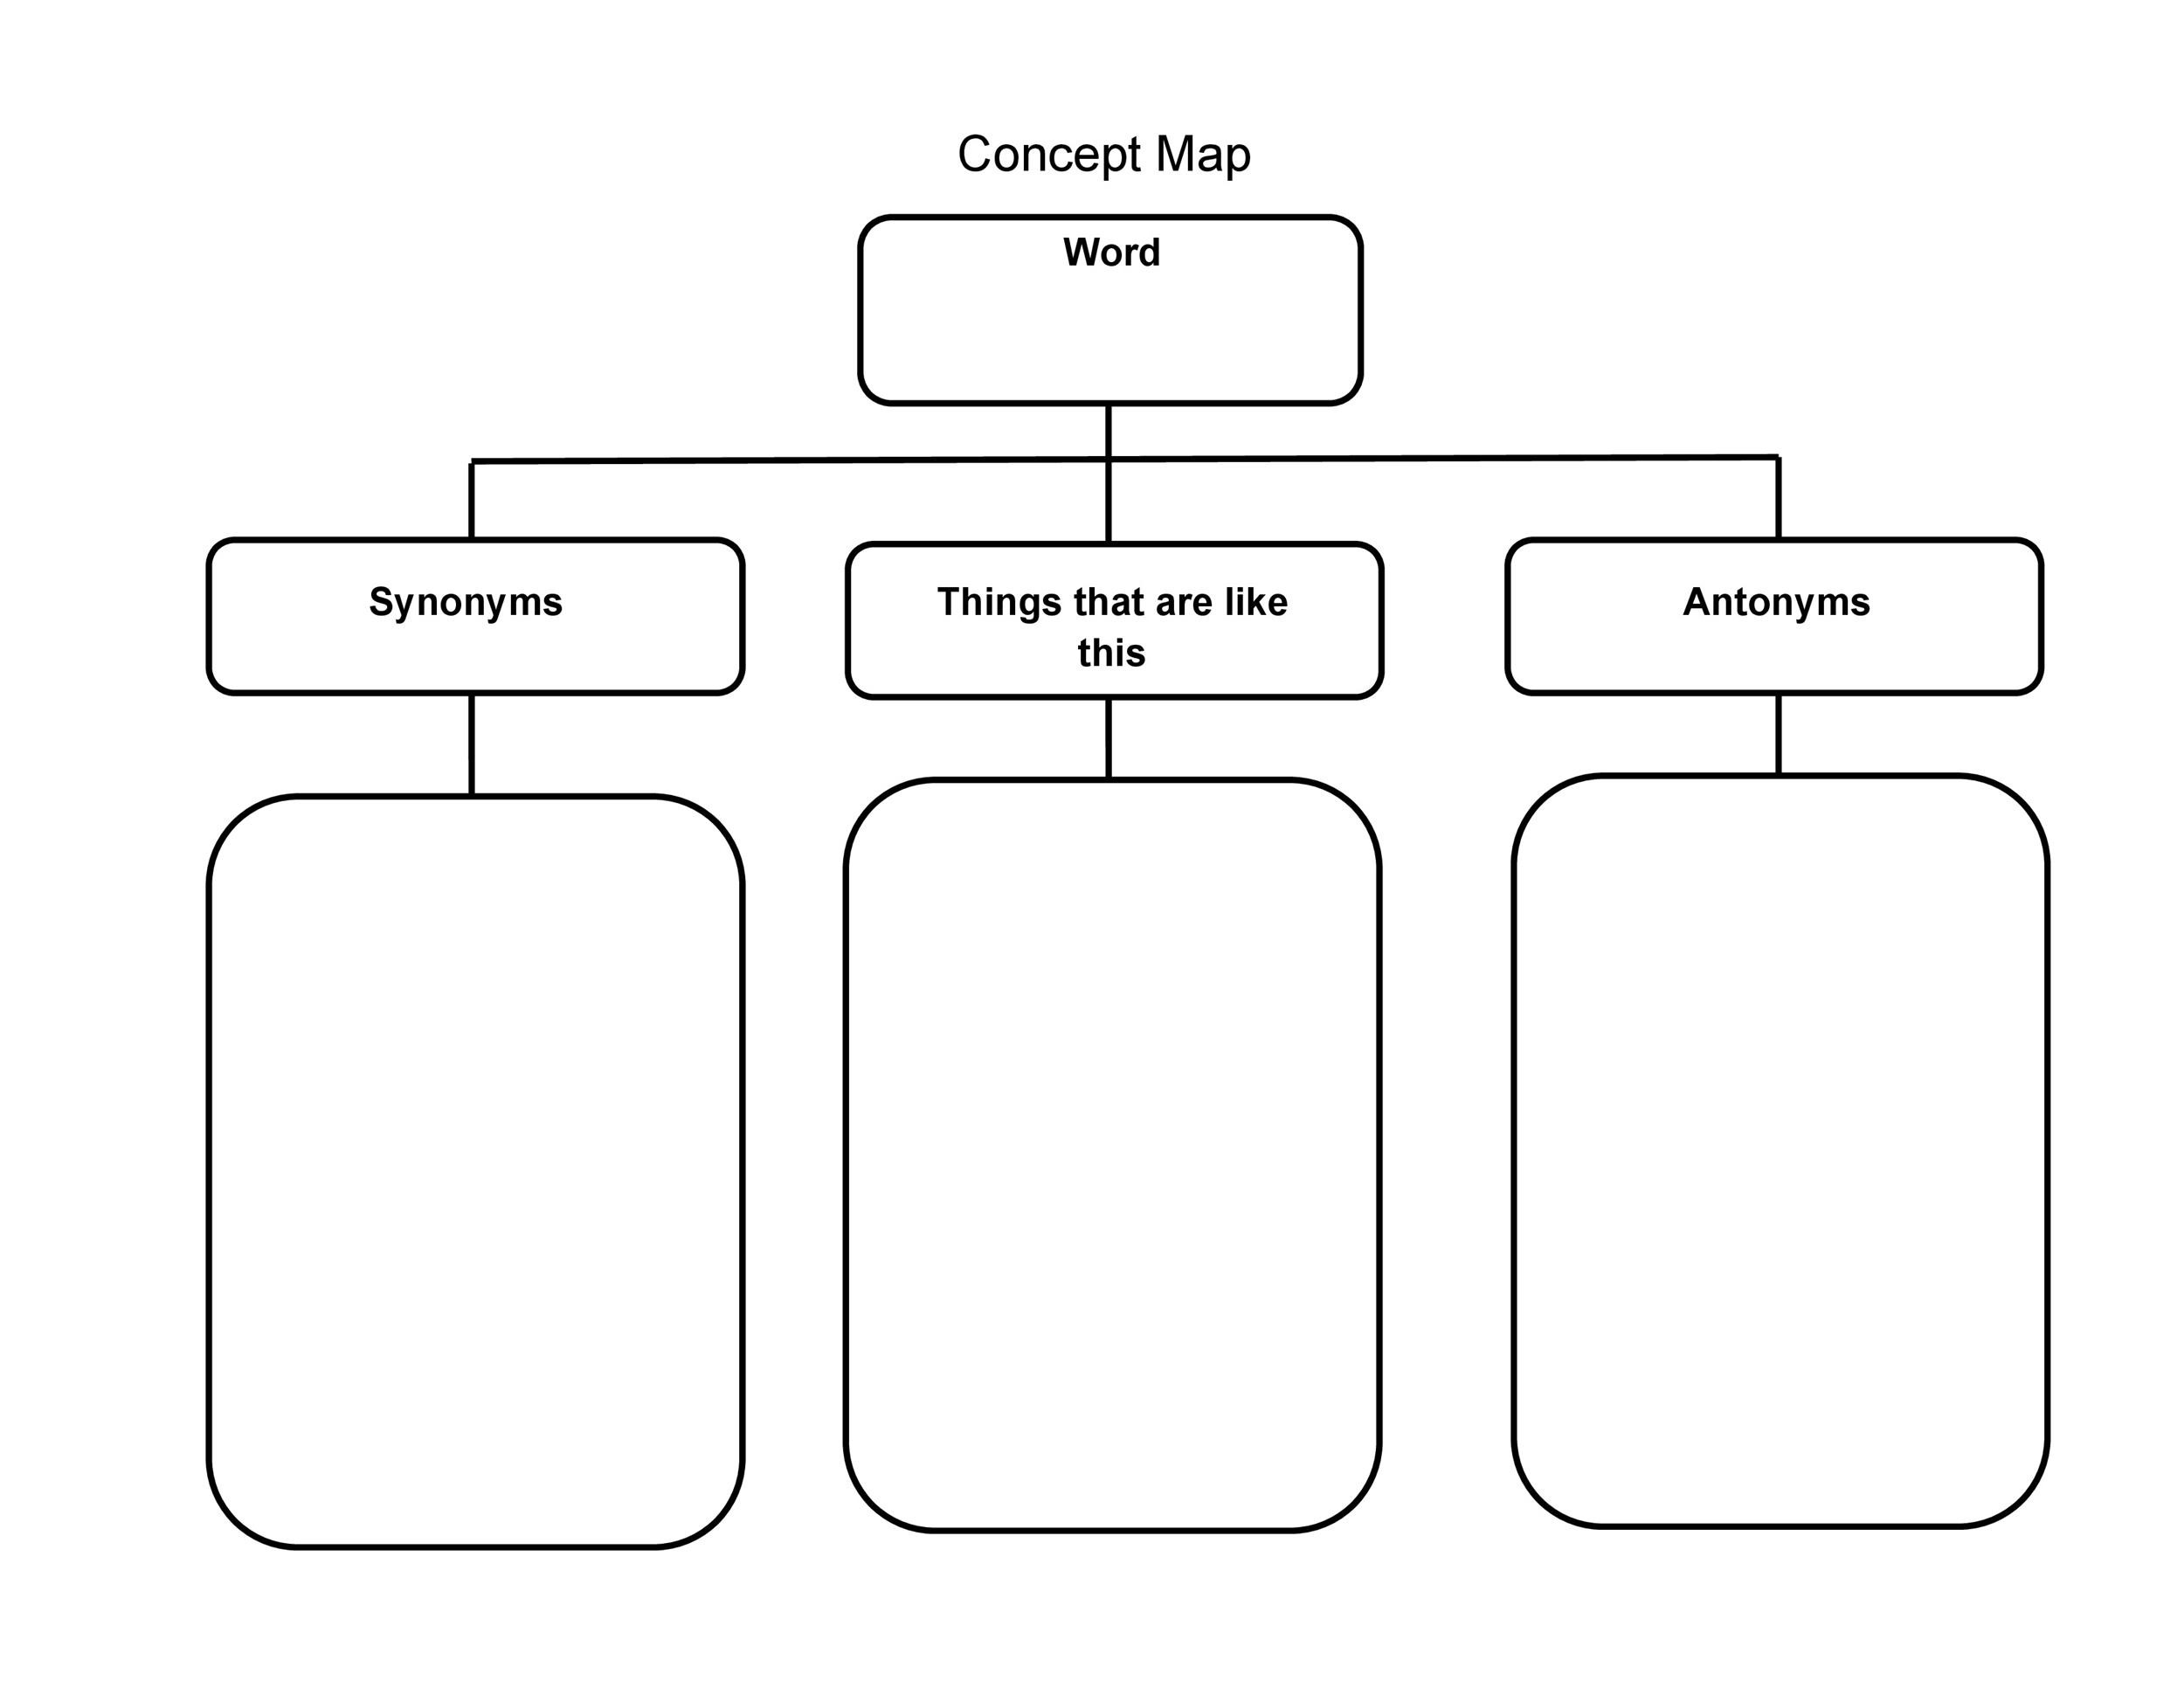 40+ Concept Map Templates Hierarchical, Spider, Flowchart